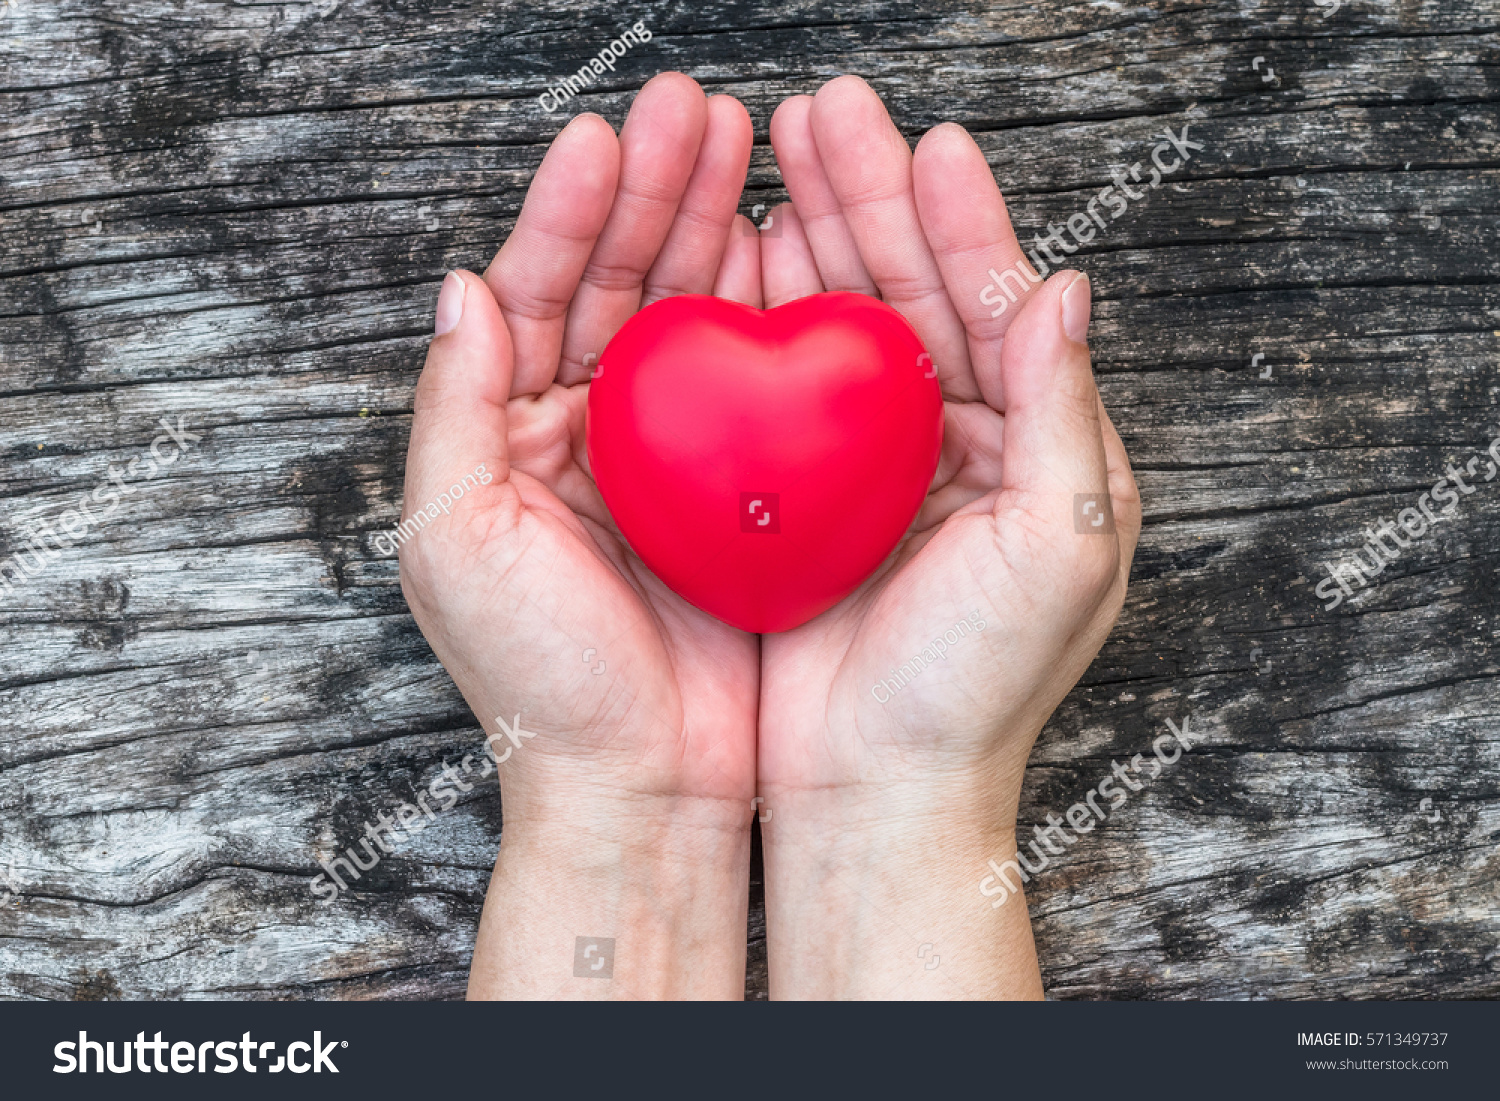 south heart divorced singles dating site Connecting christians is not an internet dating site this service operates very differently to internet dating sites and thus cannot be compared to such services although we do operate a website, you would not be joining or subscribing to a site per se.